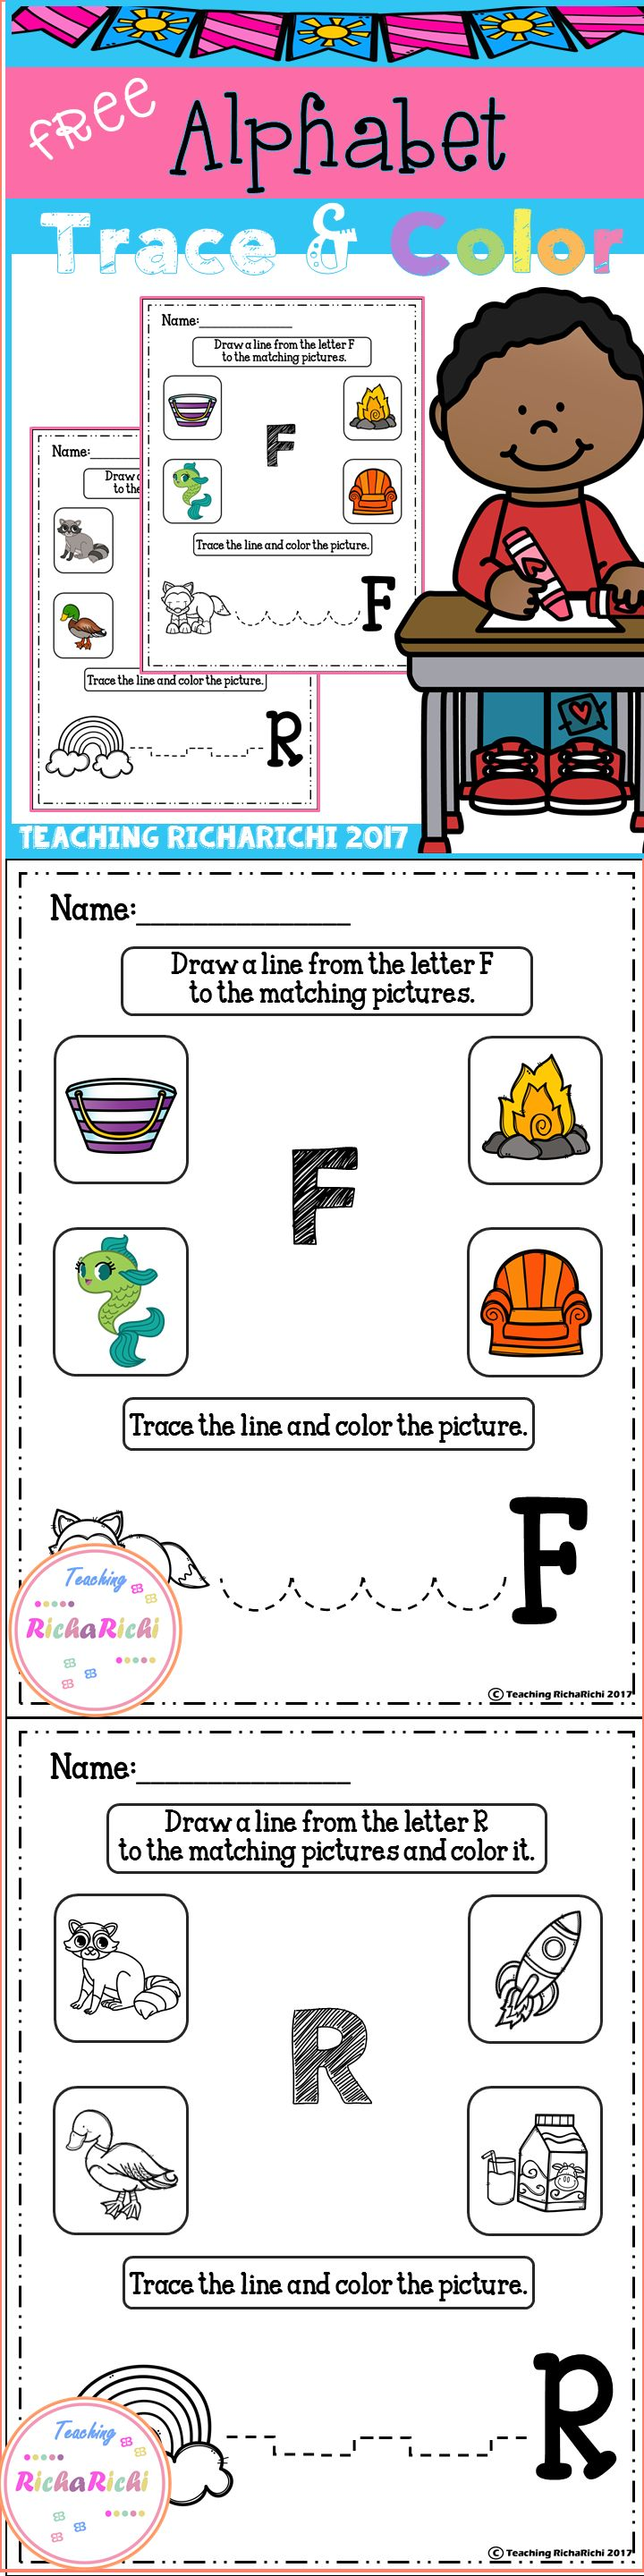 worksheet Pre K Sight Words Worksheets 1000 ideas about pre k sight words on pinterest freebies printables worksheet prep tpt activities alphabet kindergarten activities